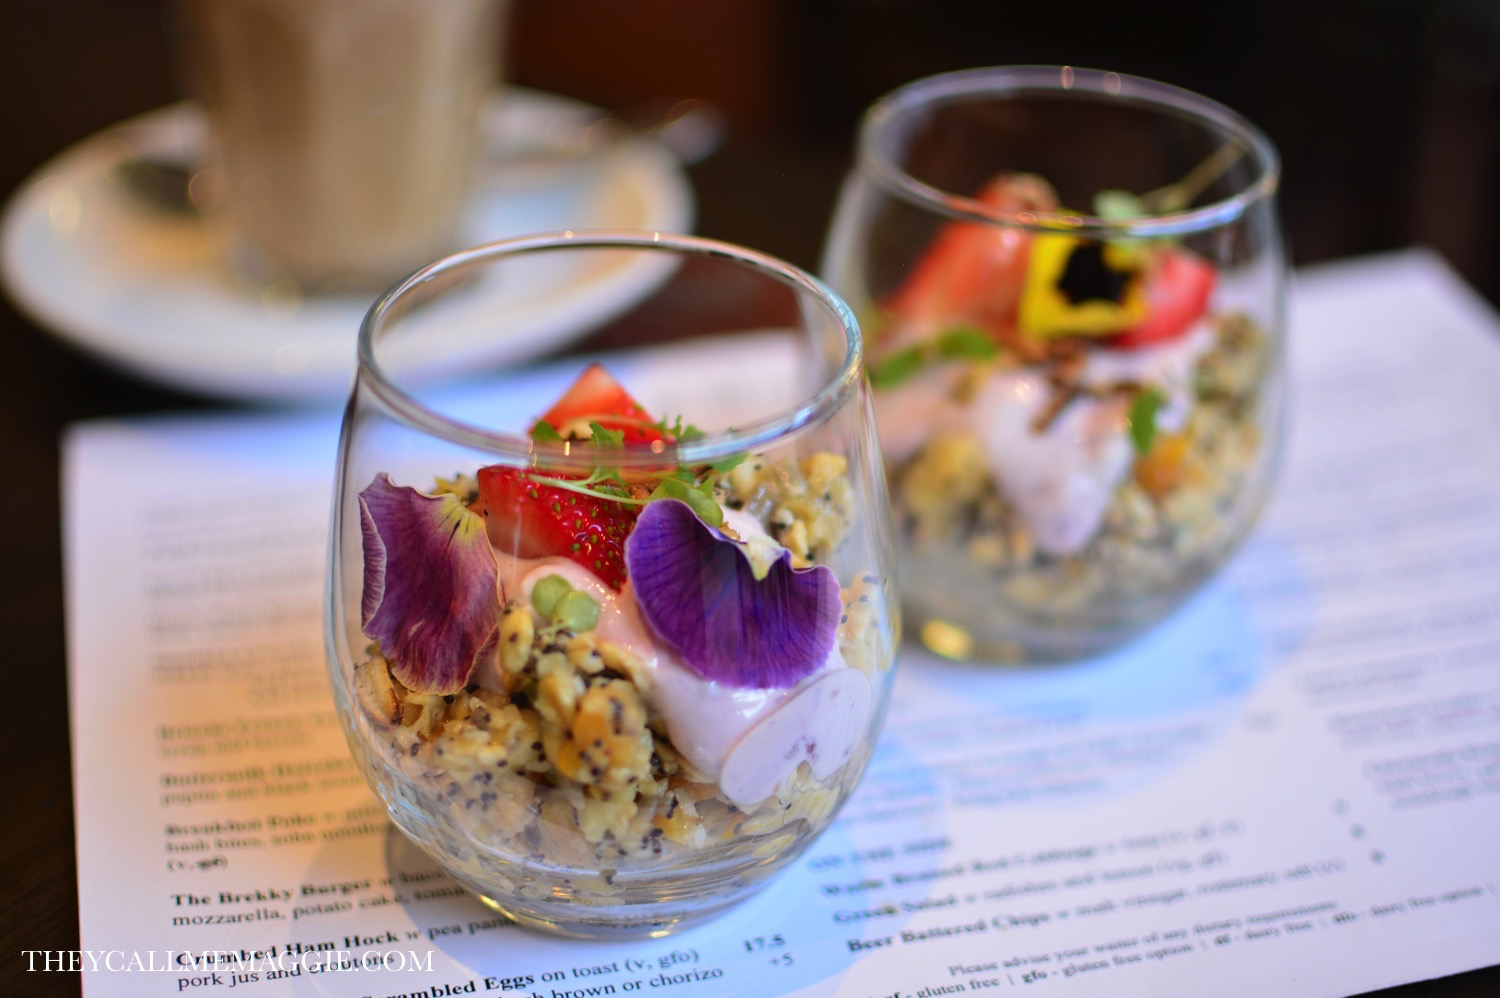 House made bircher muesli with poached autumn fruits, grains, berried yoghurt and chai crisp.